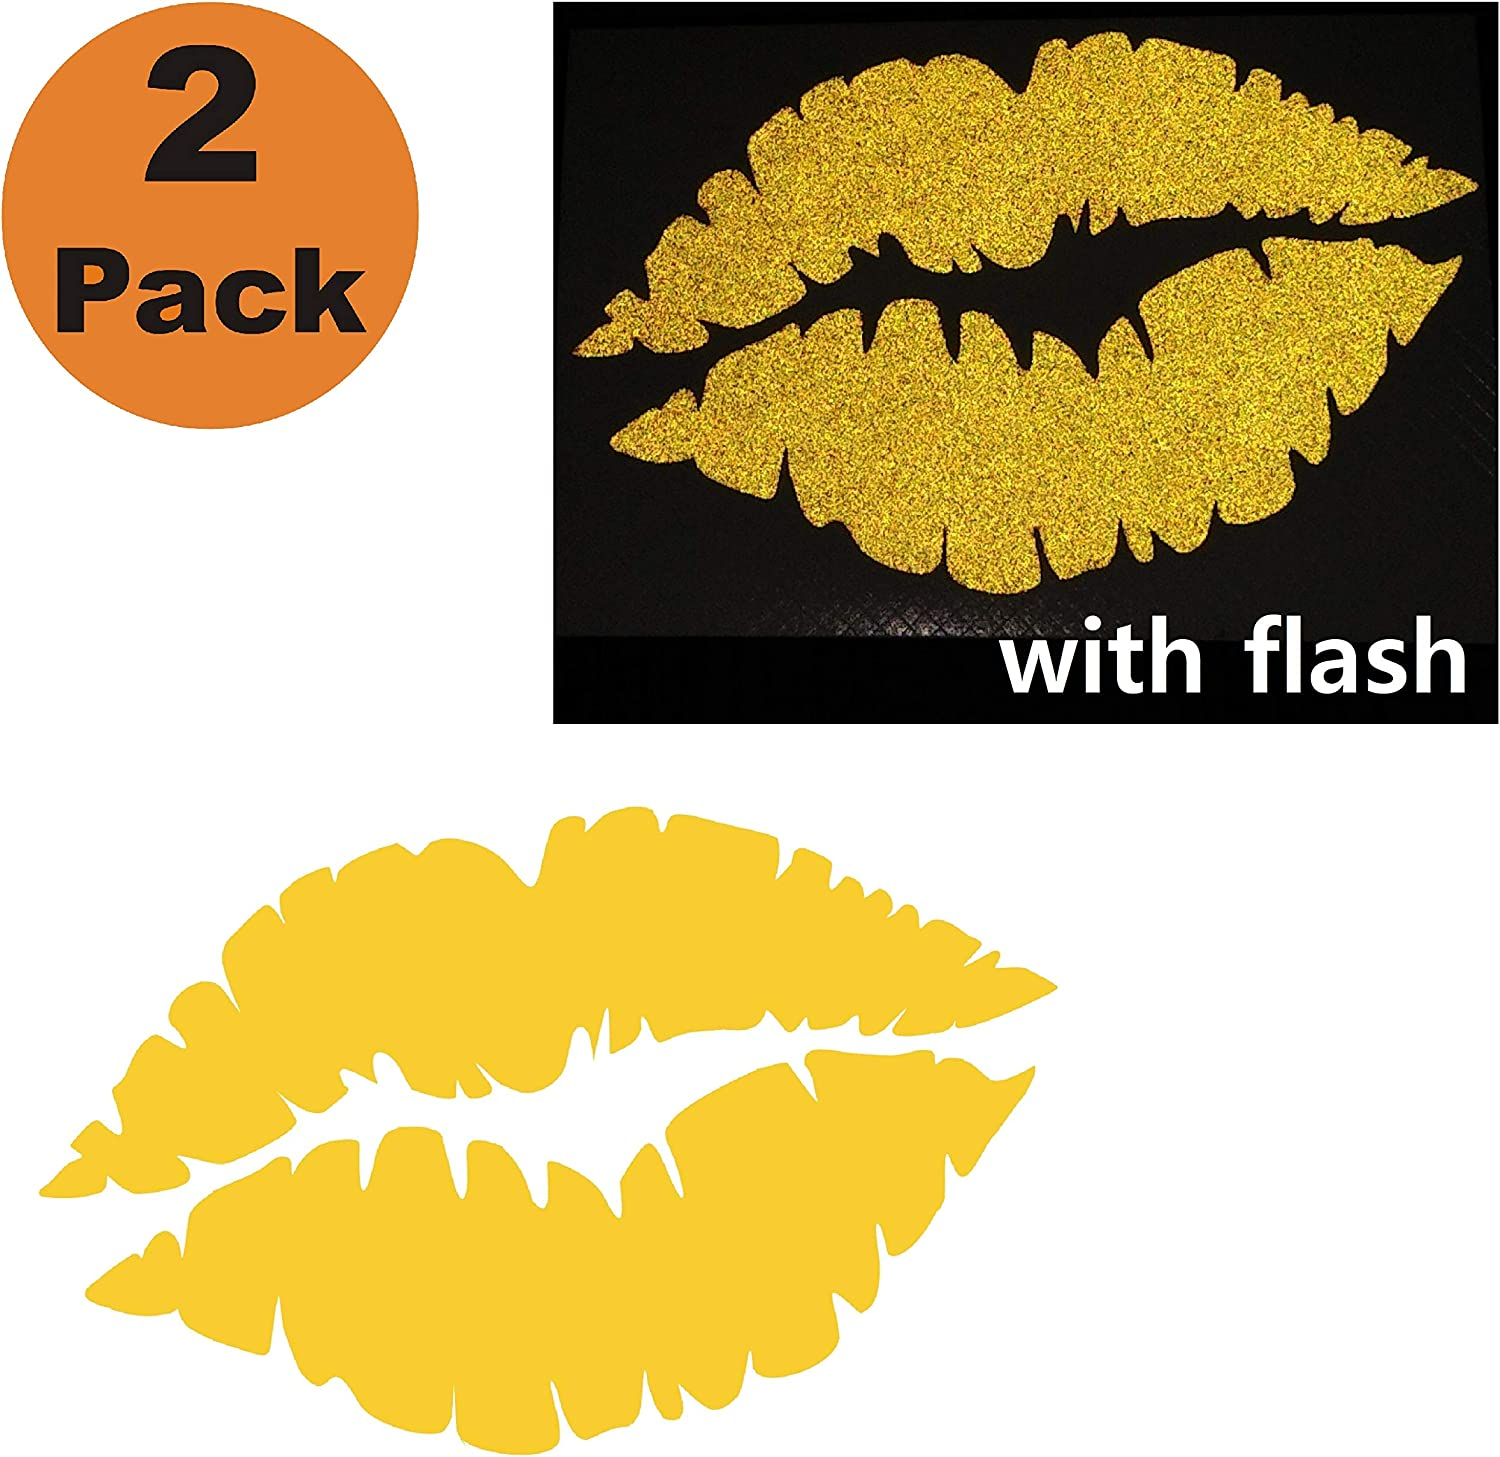 """CUSHYSTORE Lips 3"""" Kiss Reflective Decal for Motorcycle Car Hardhat Phone Laptop Gold, 2 Packs"""